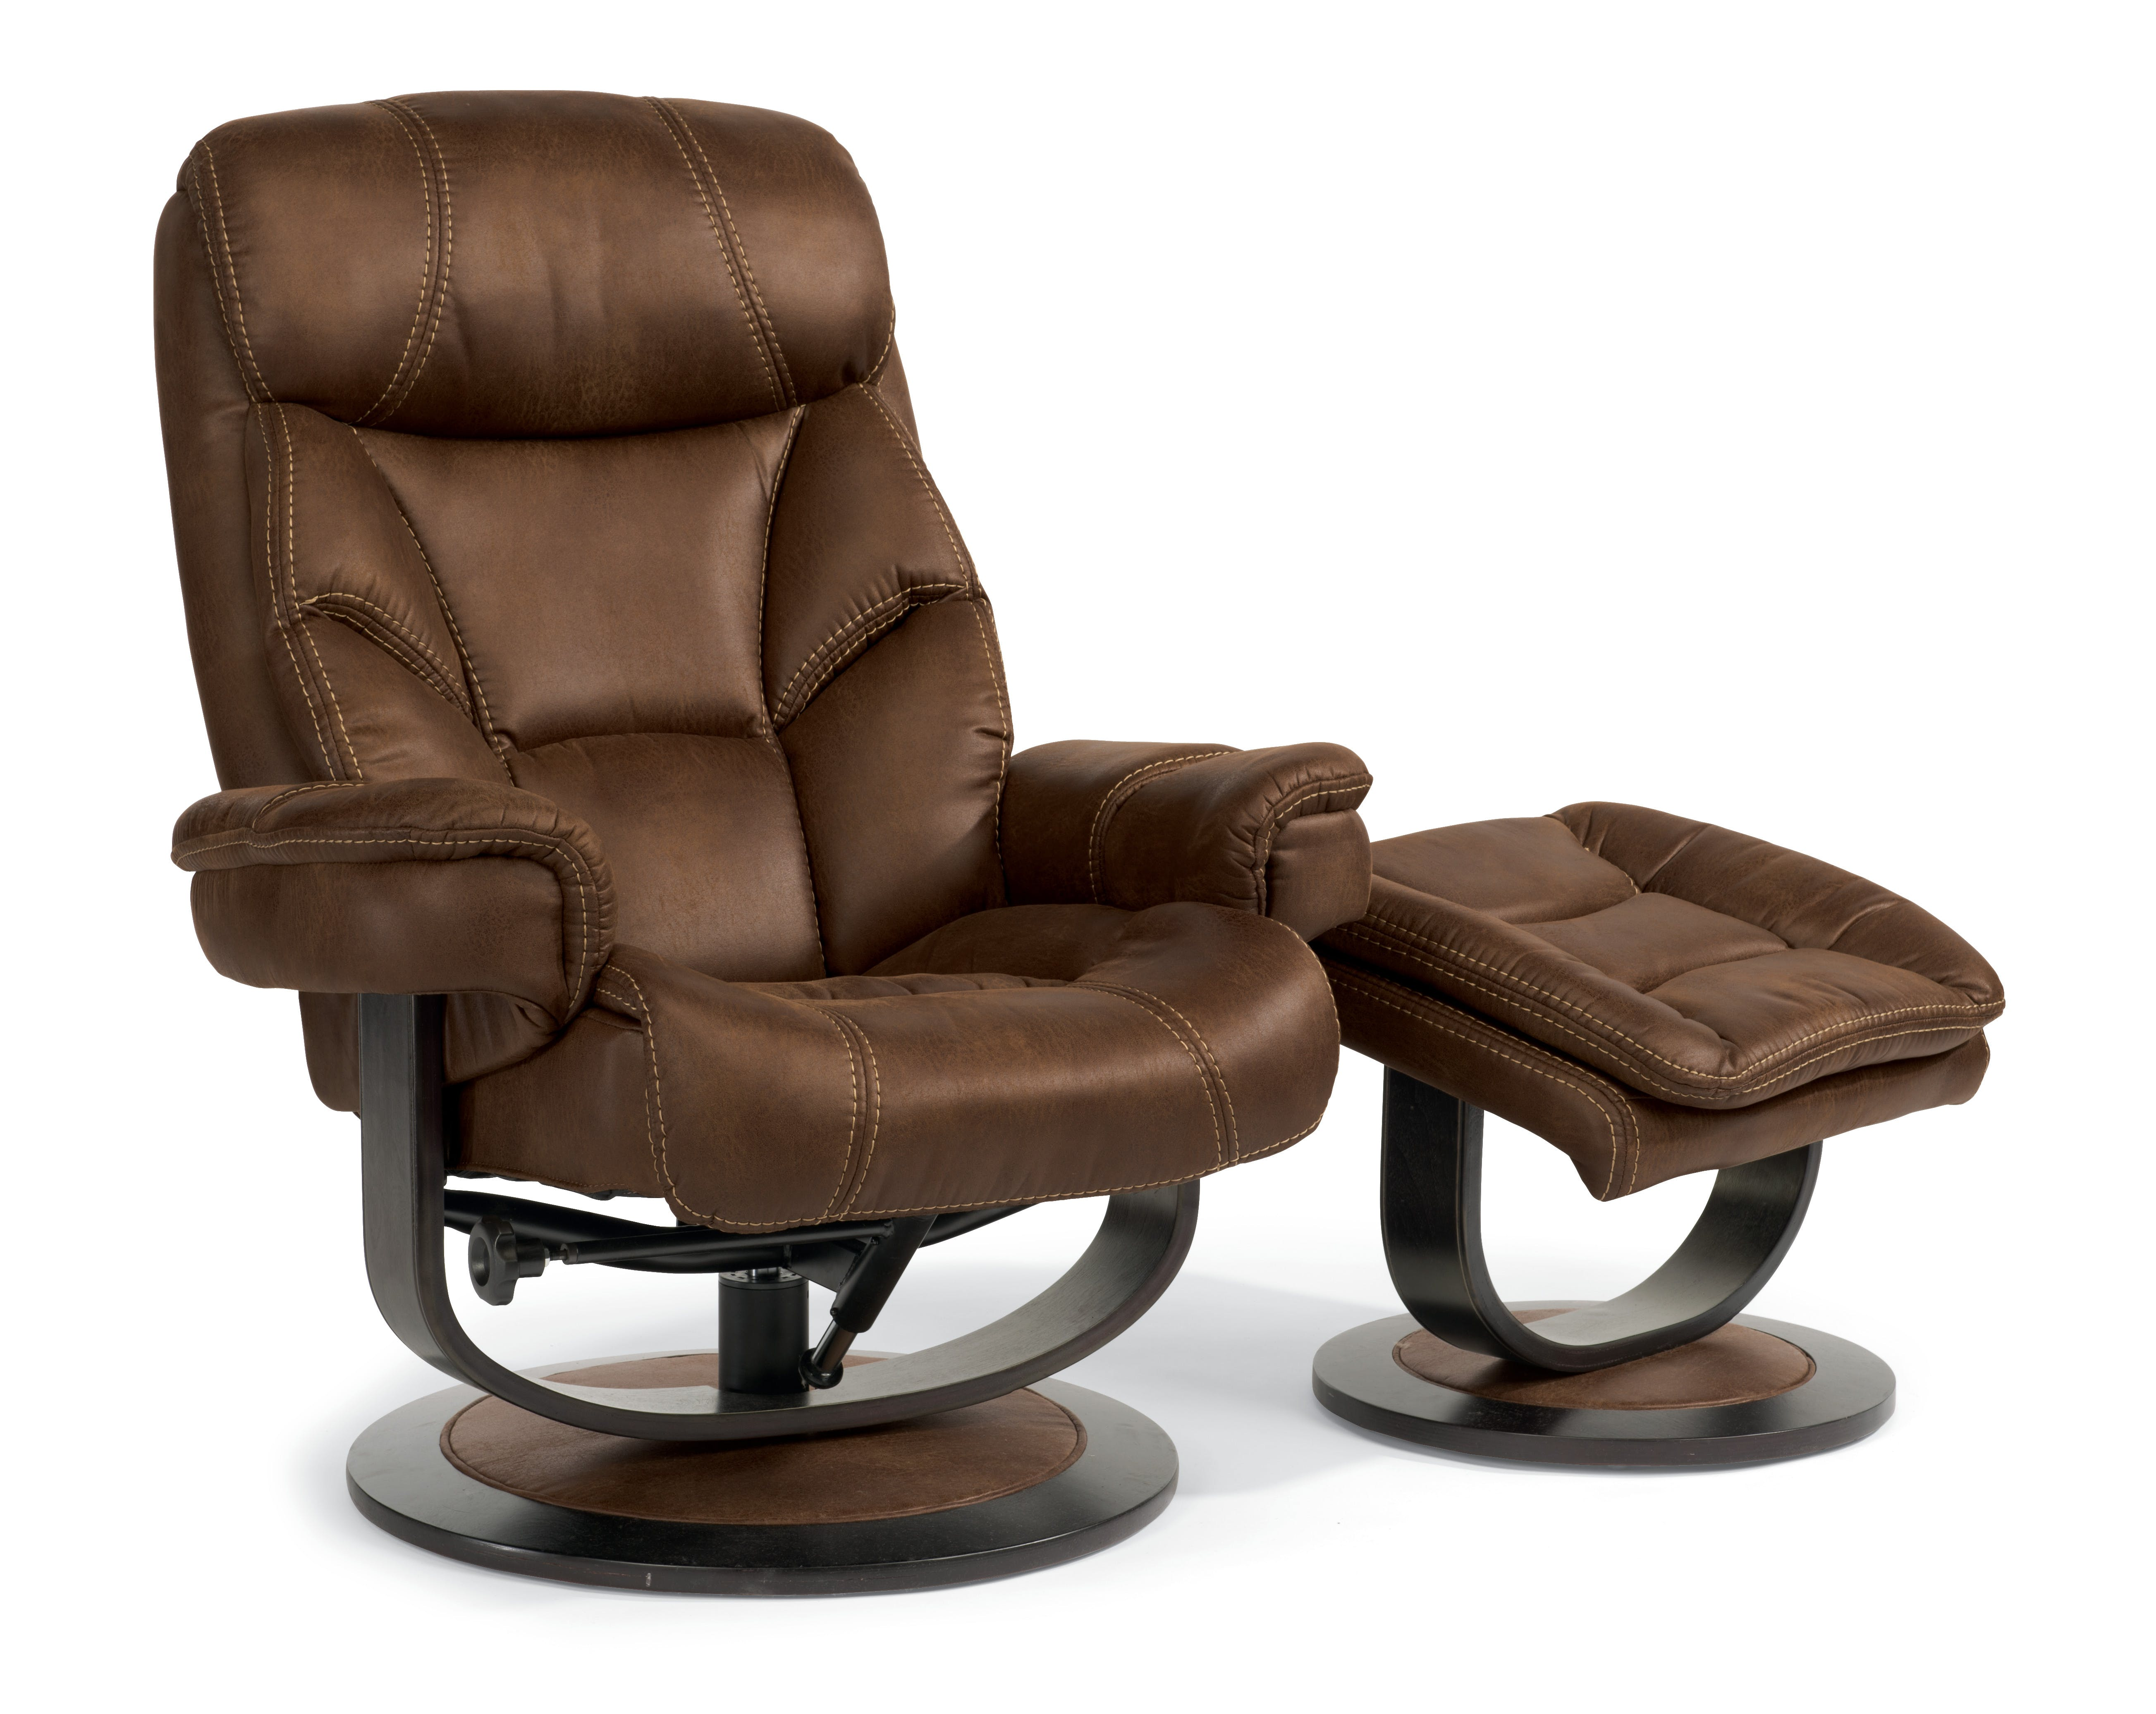 Flexsteel Recliner Chair and Ottoman 456870 - Talsma Furniture